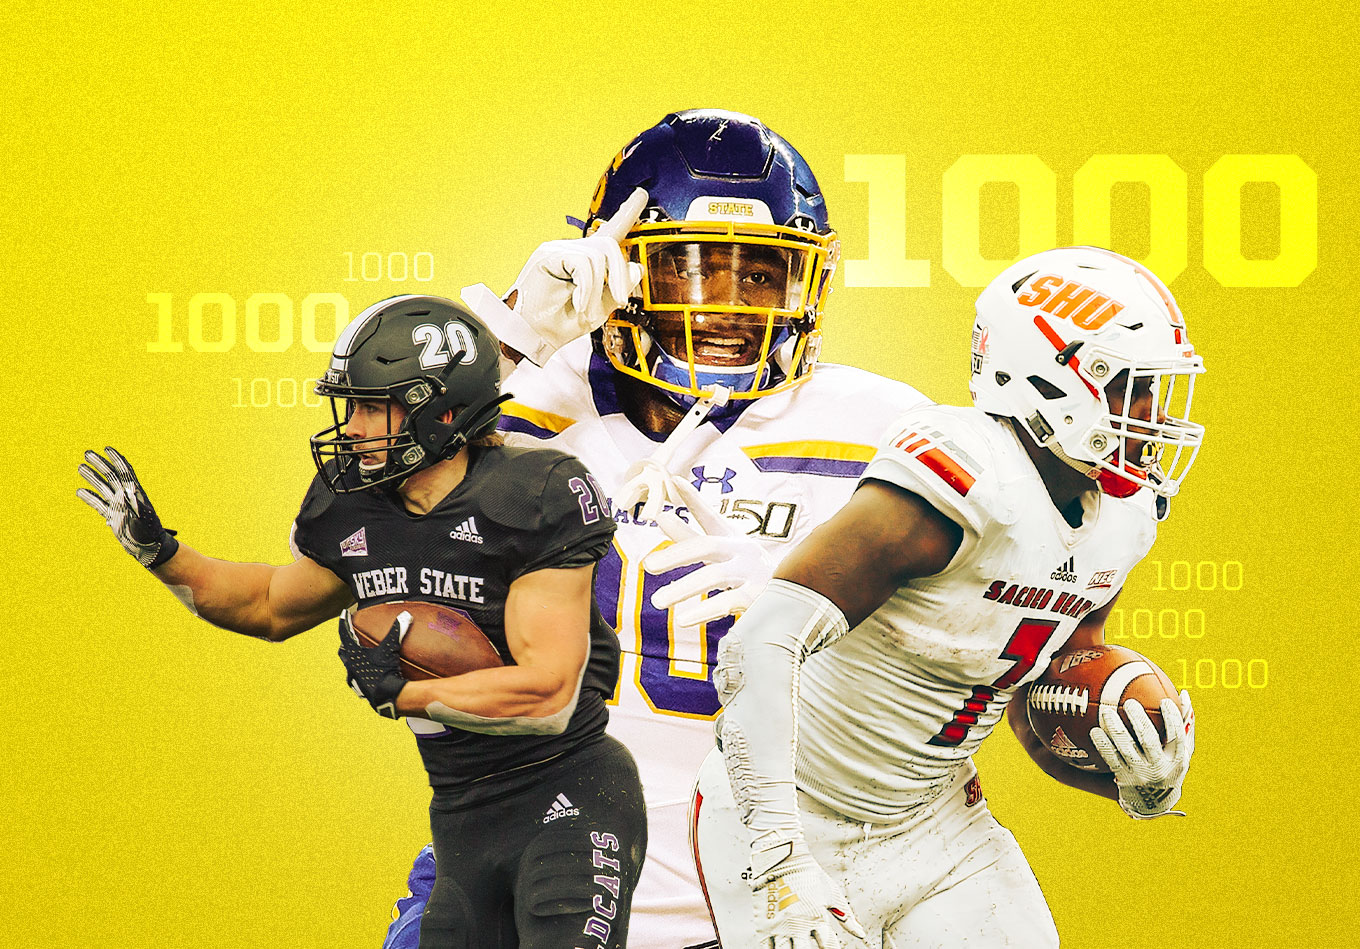 Even Walter Payton May Have Called This the Year of the Running Back in FCS